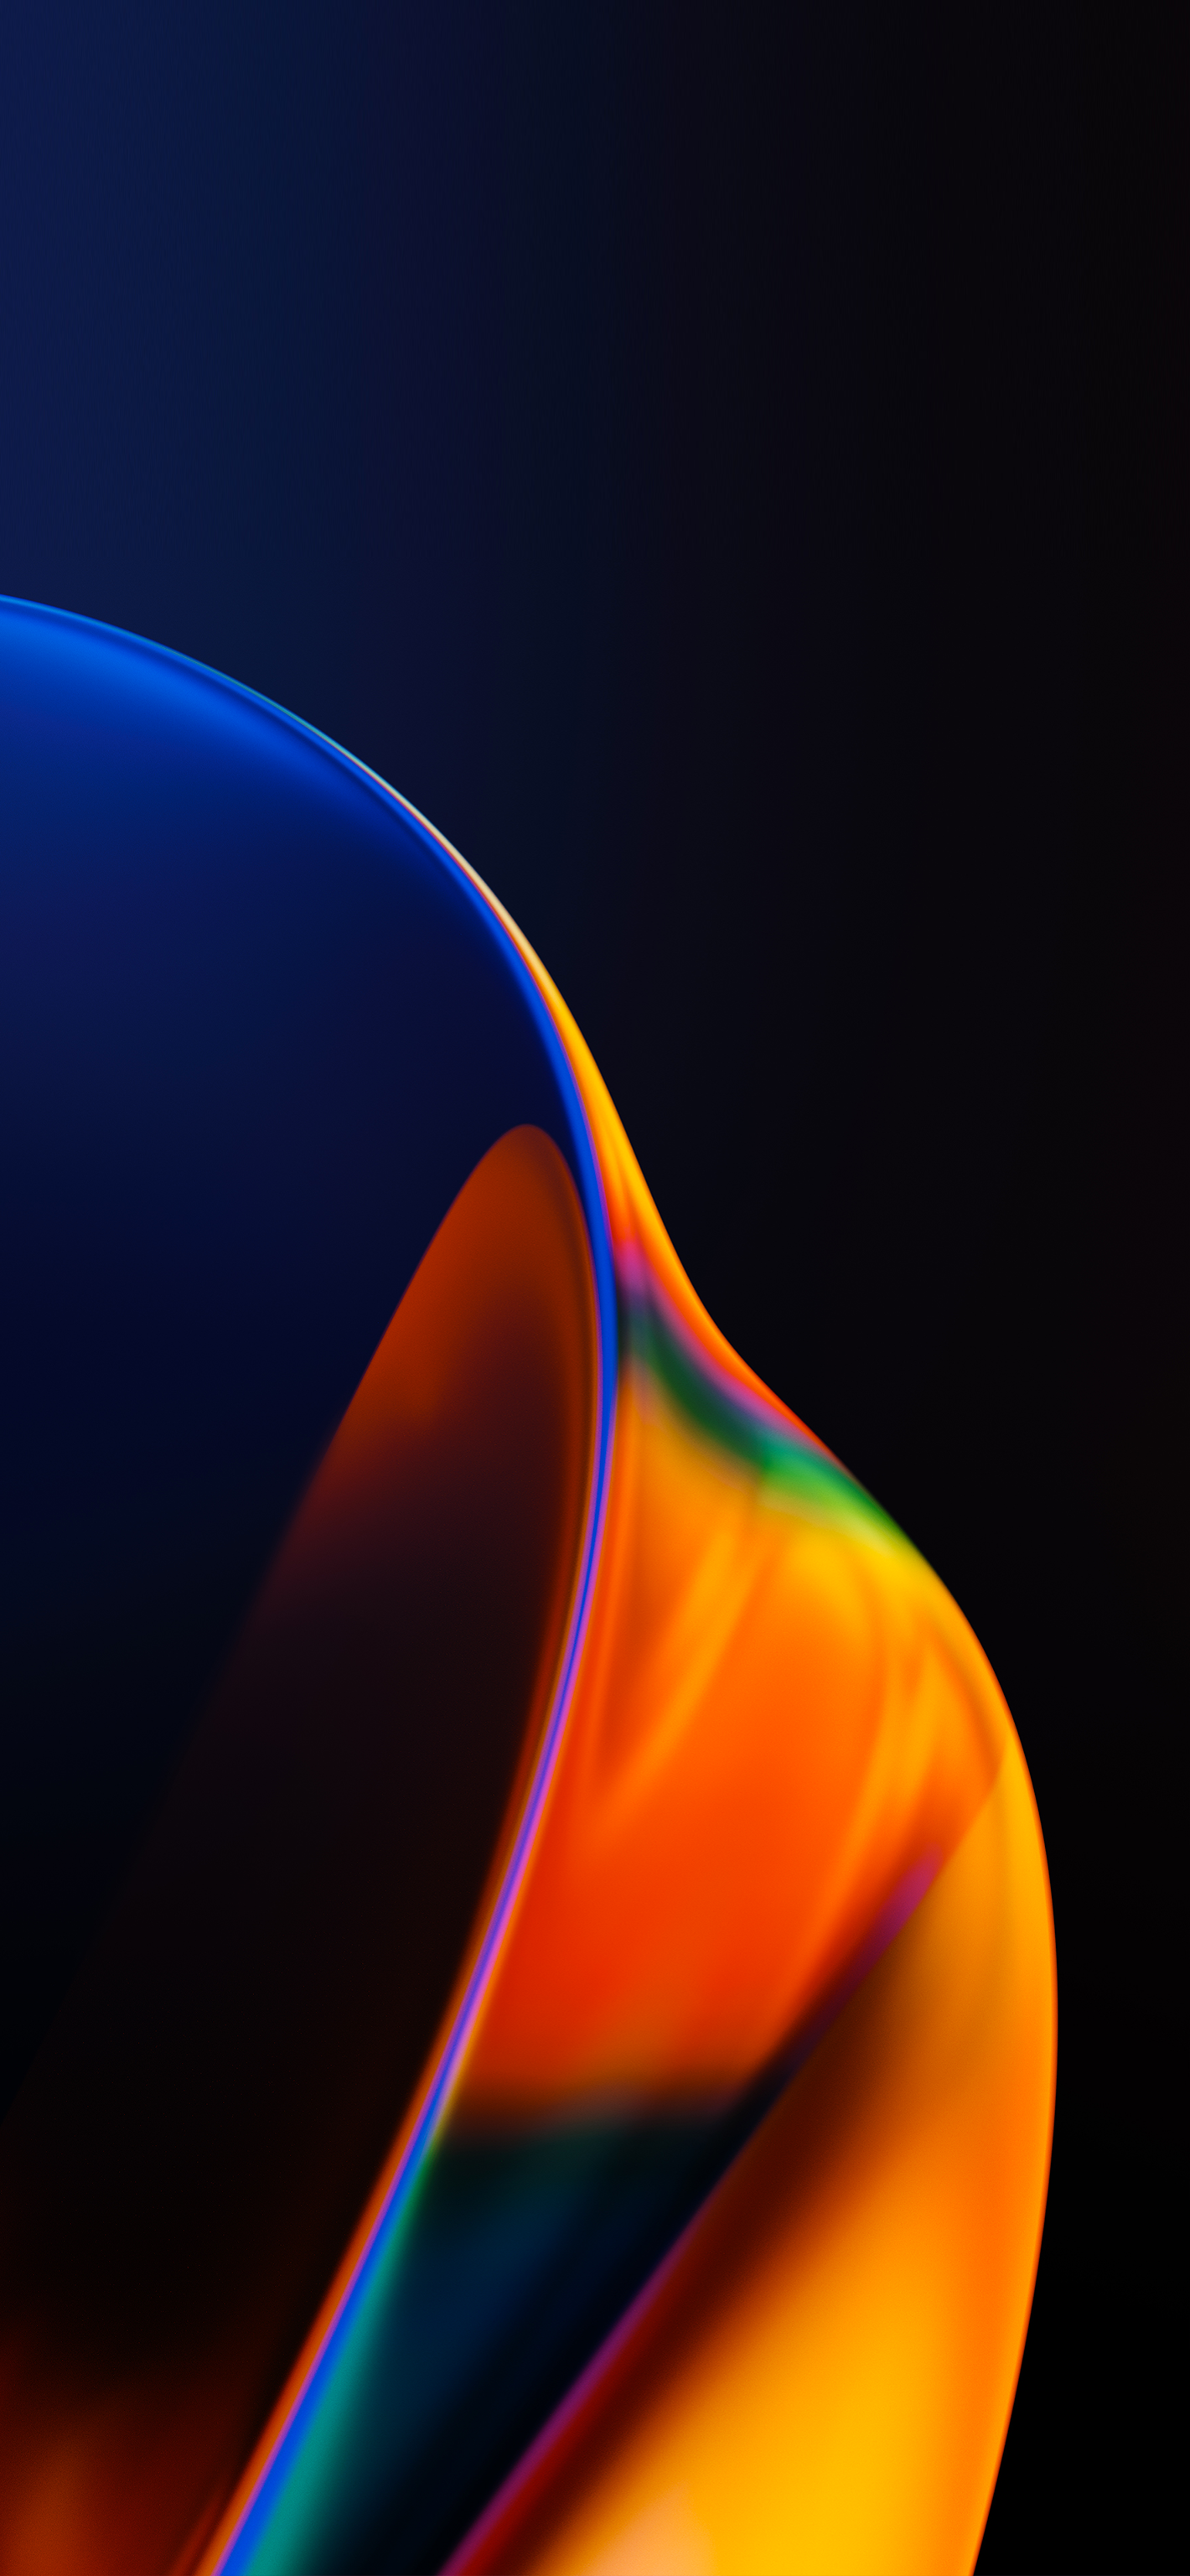 Strong Lights Game From Ios 14 Lockscreen Concept Wallpapers Central